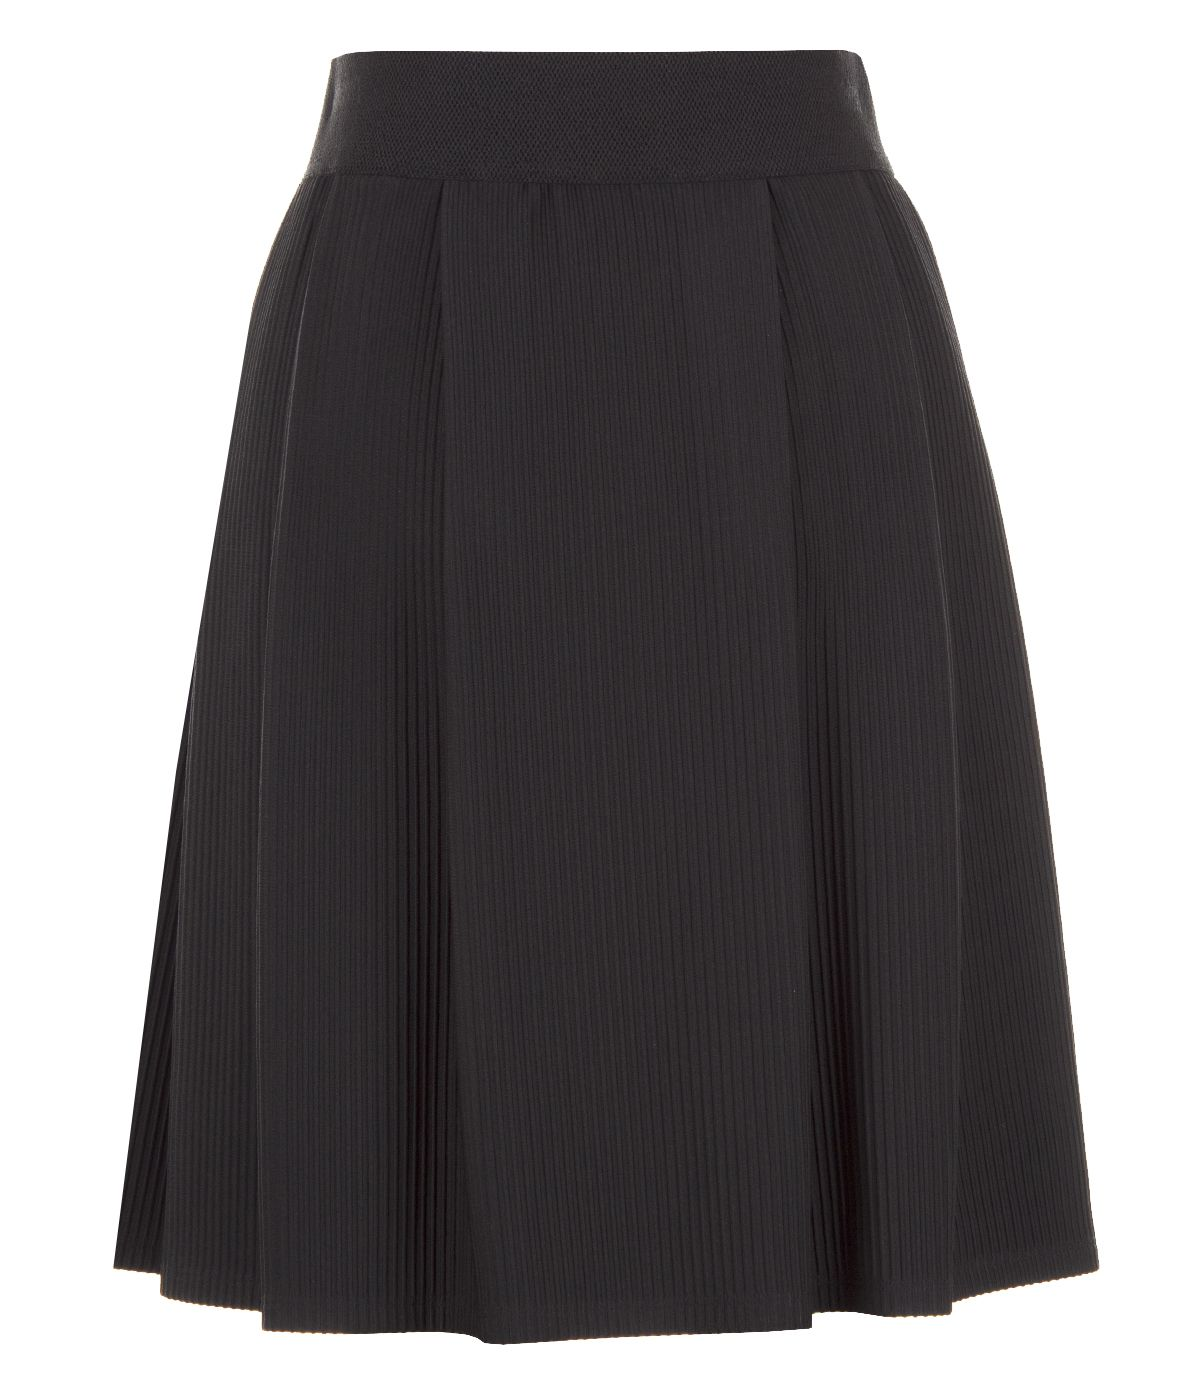 Emphasized wide-waistline skirt with rayon 1